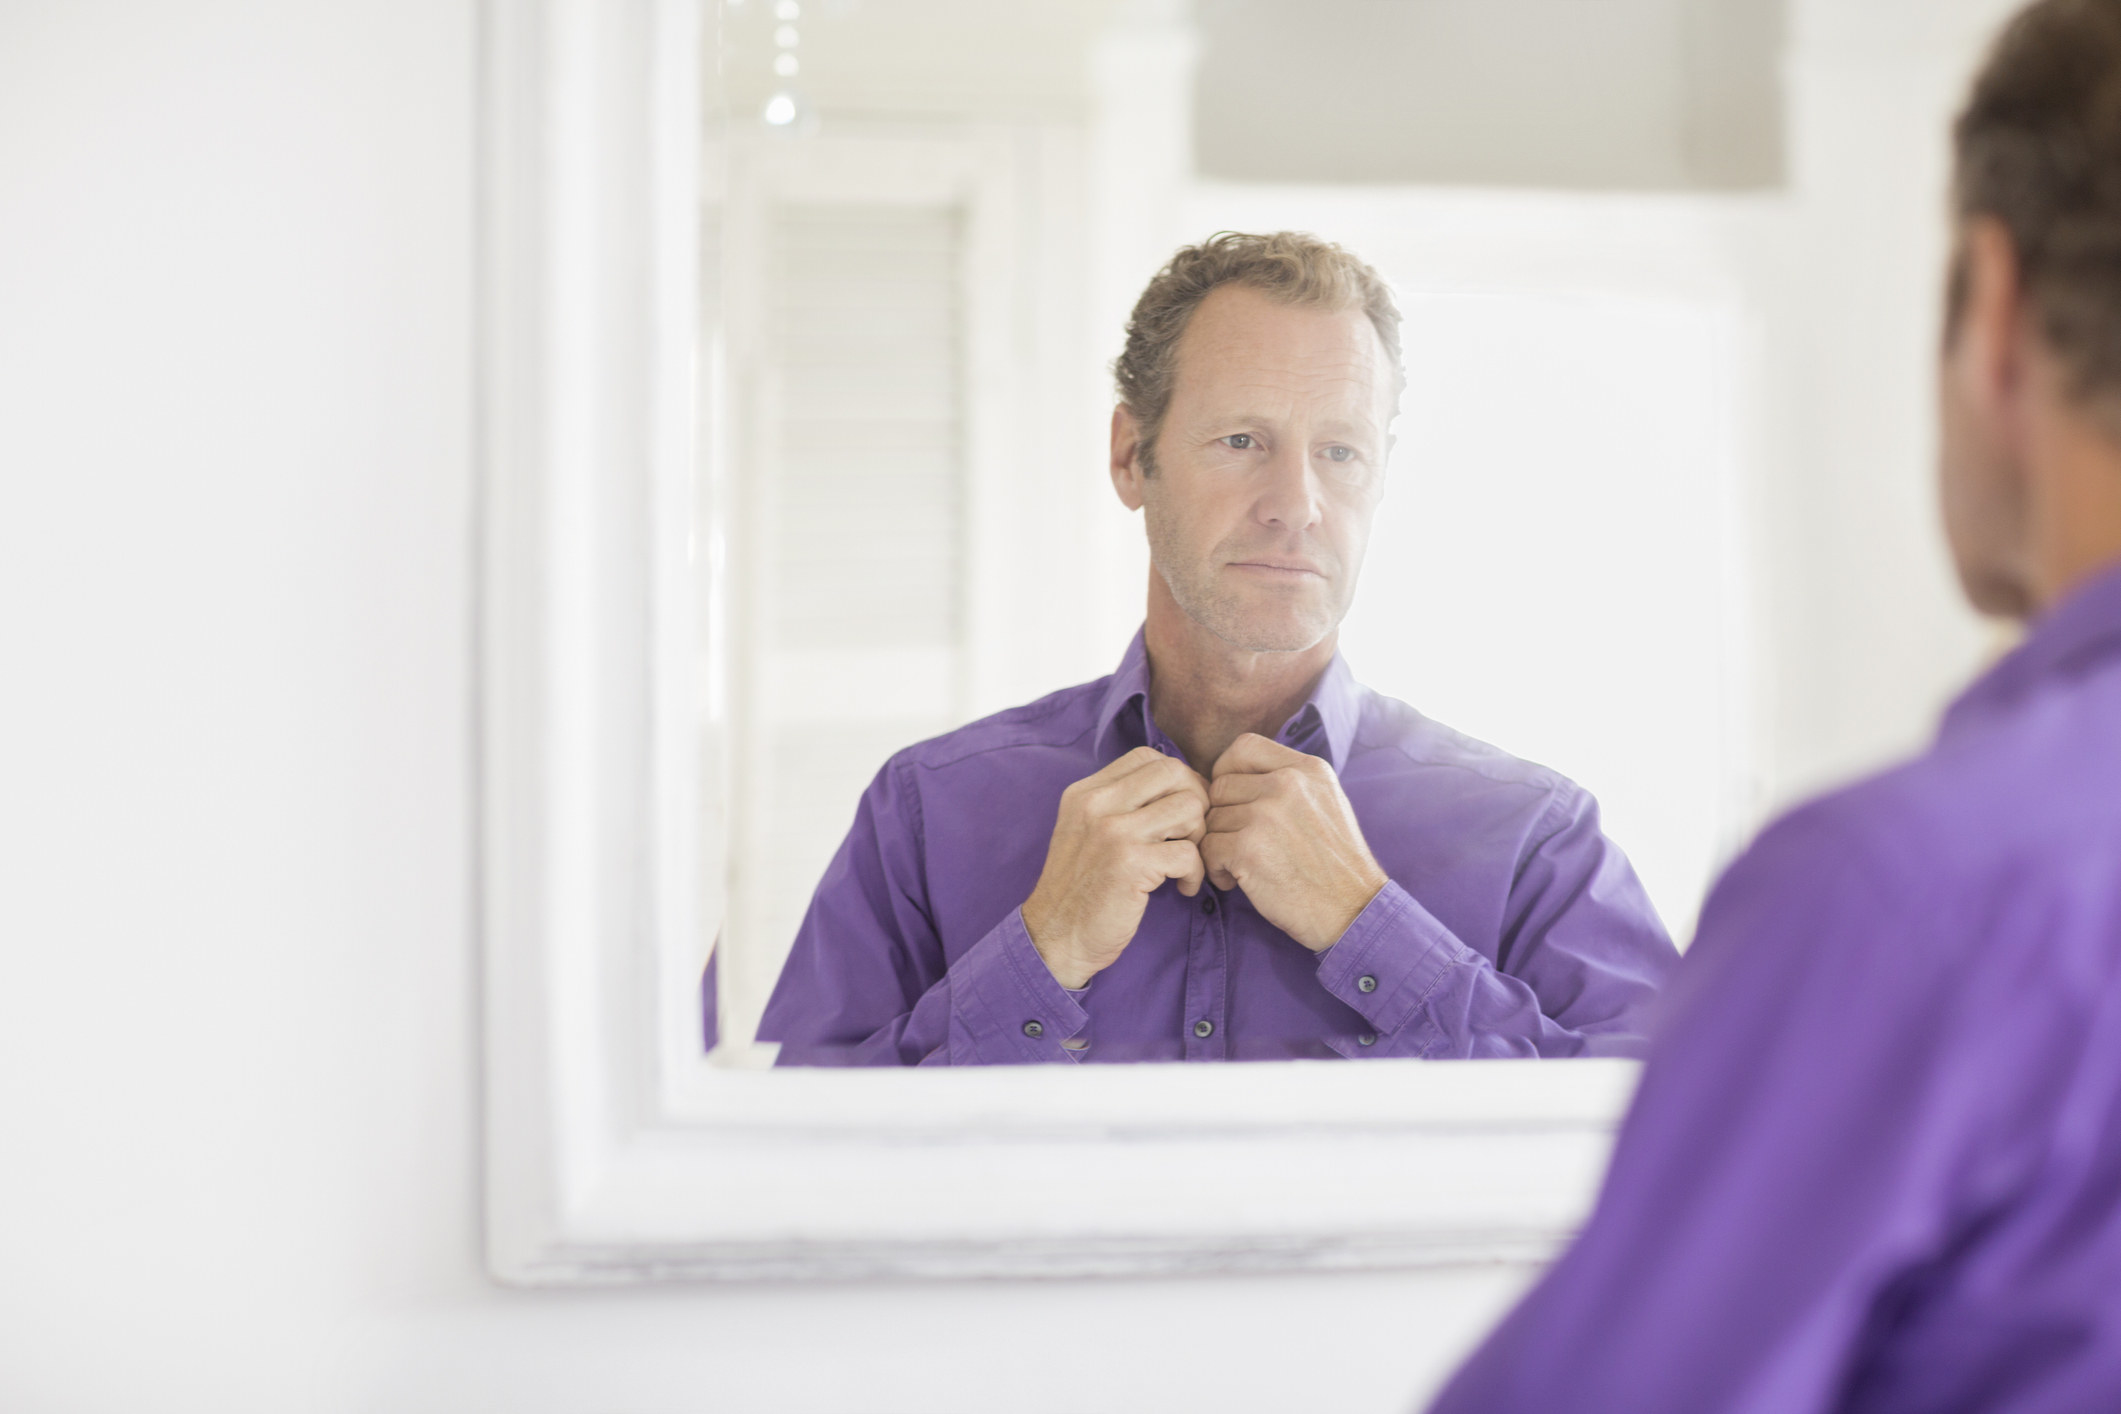 A man buttons up his purple shirt as he looks at himself in a mirror